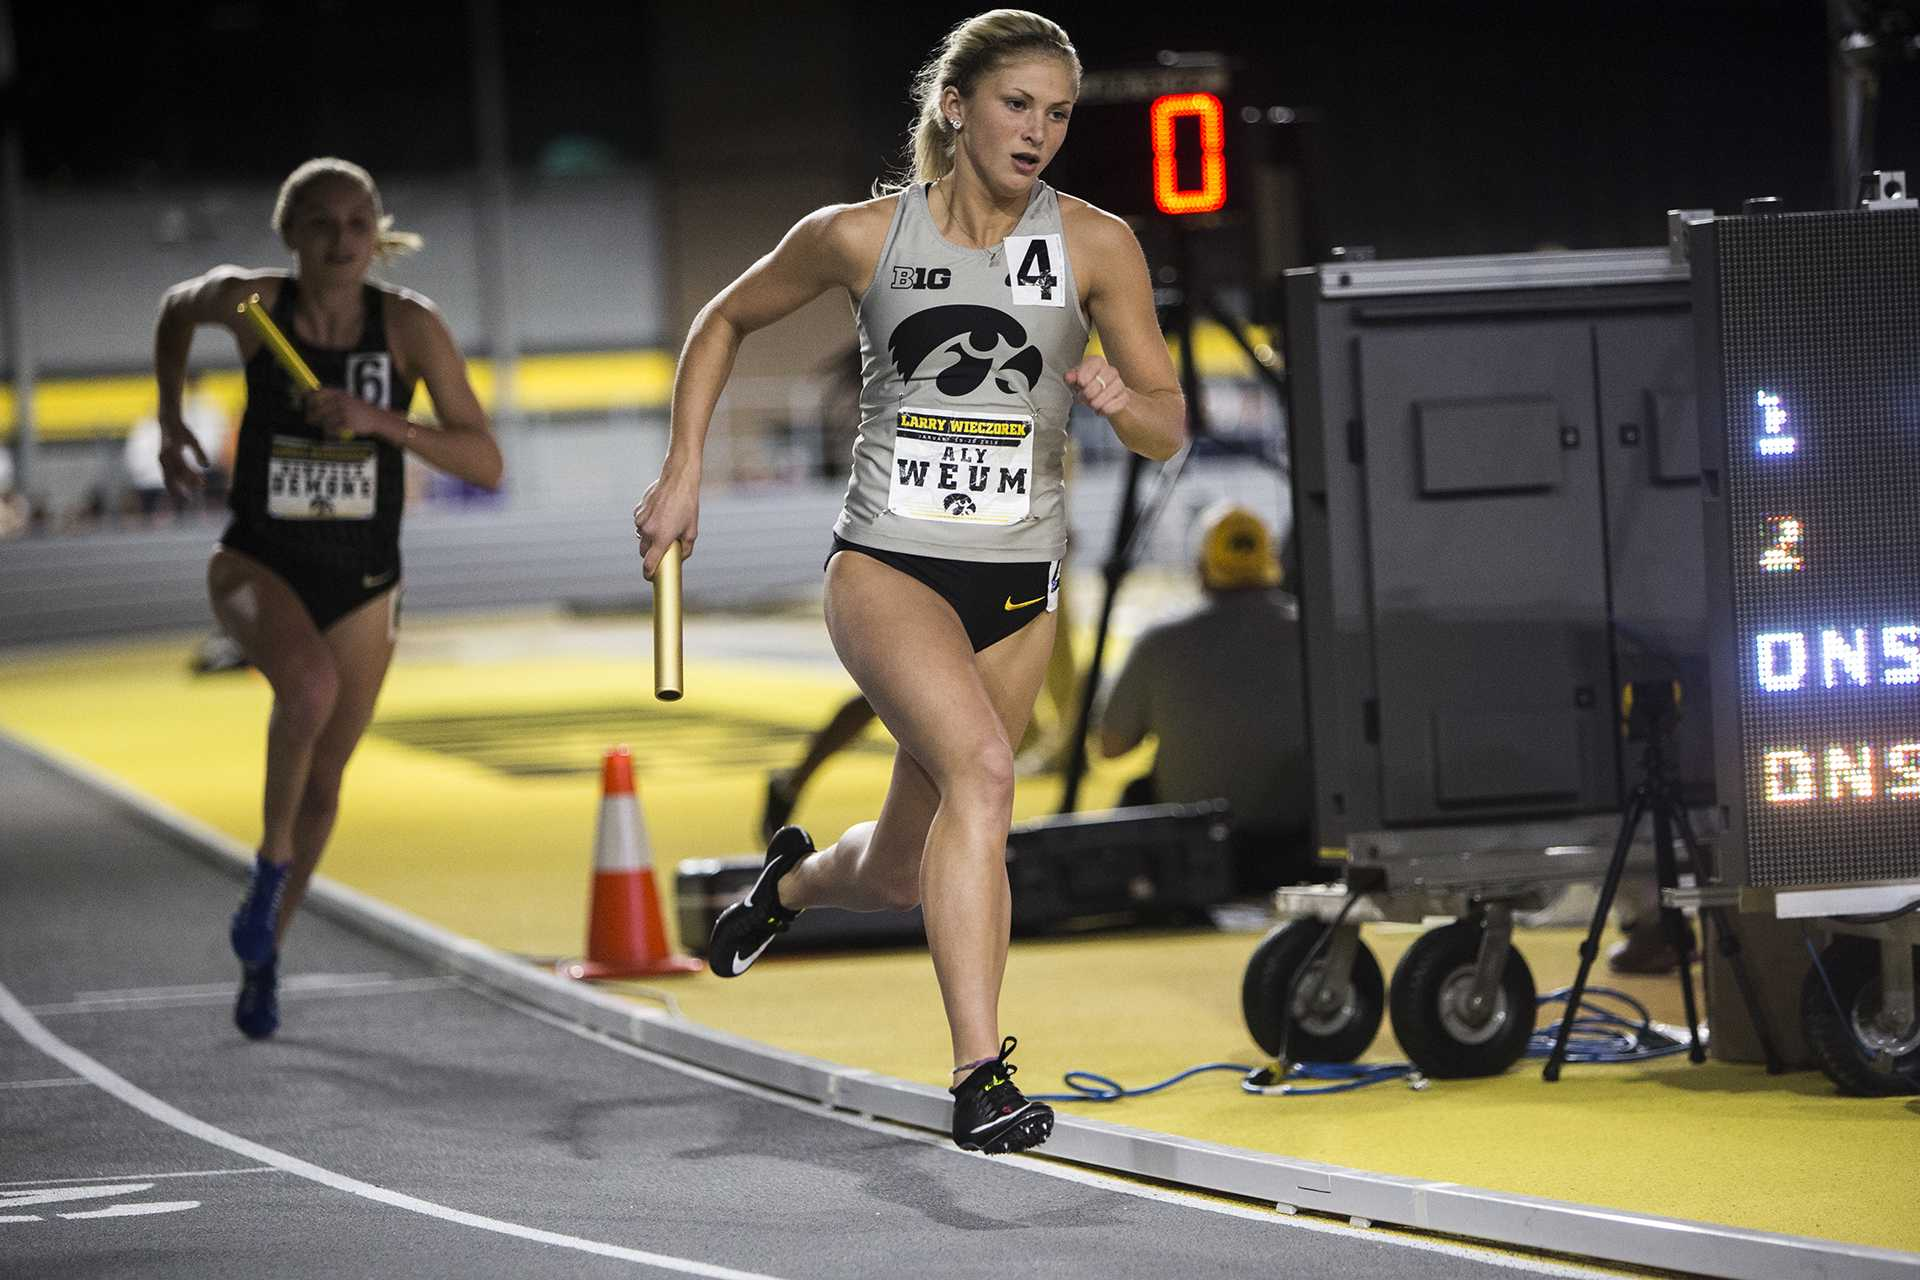 Iowa women's track and field continues to thrive on the road